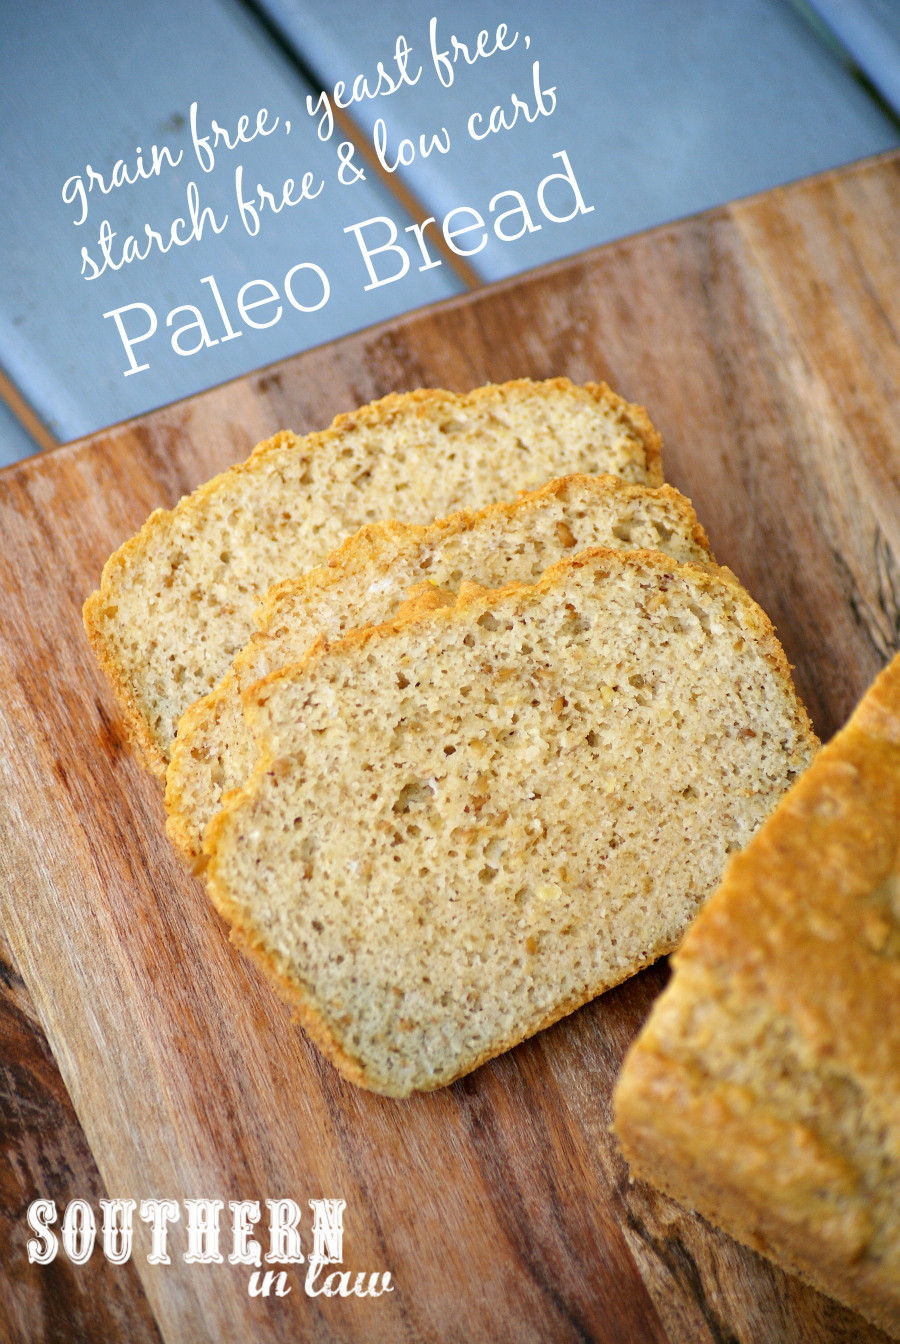 Gluten Free Bread Recipe With Yeast  Southern In Law Recipe Starch Yeast & Grain Free Paleo